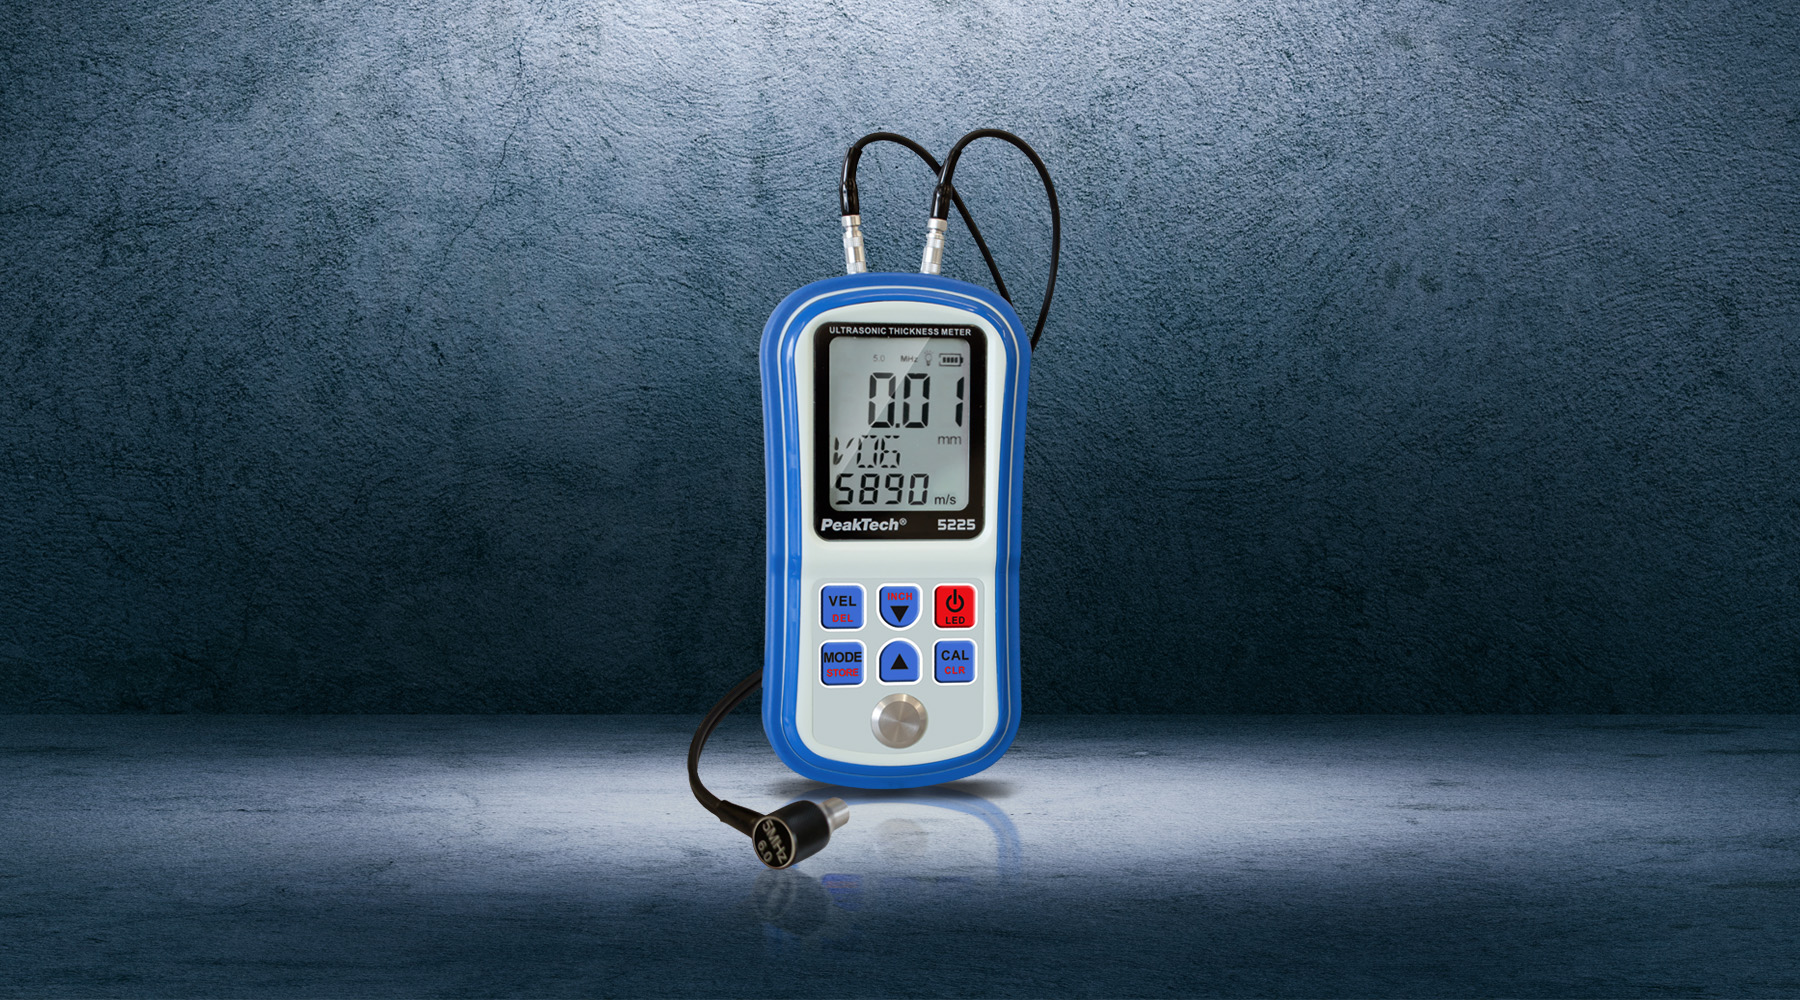 Material thickness gauges